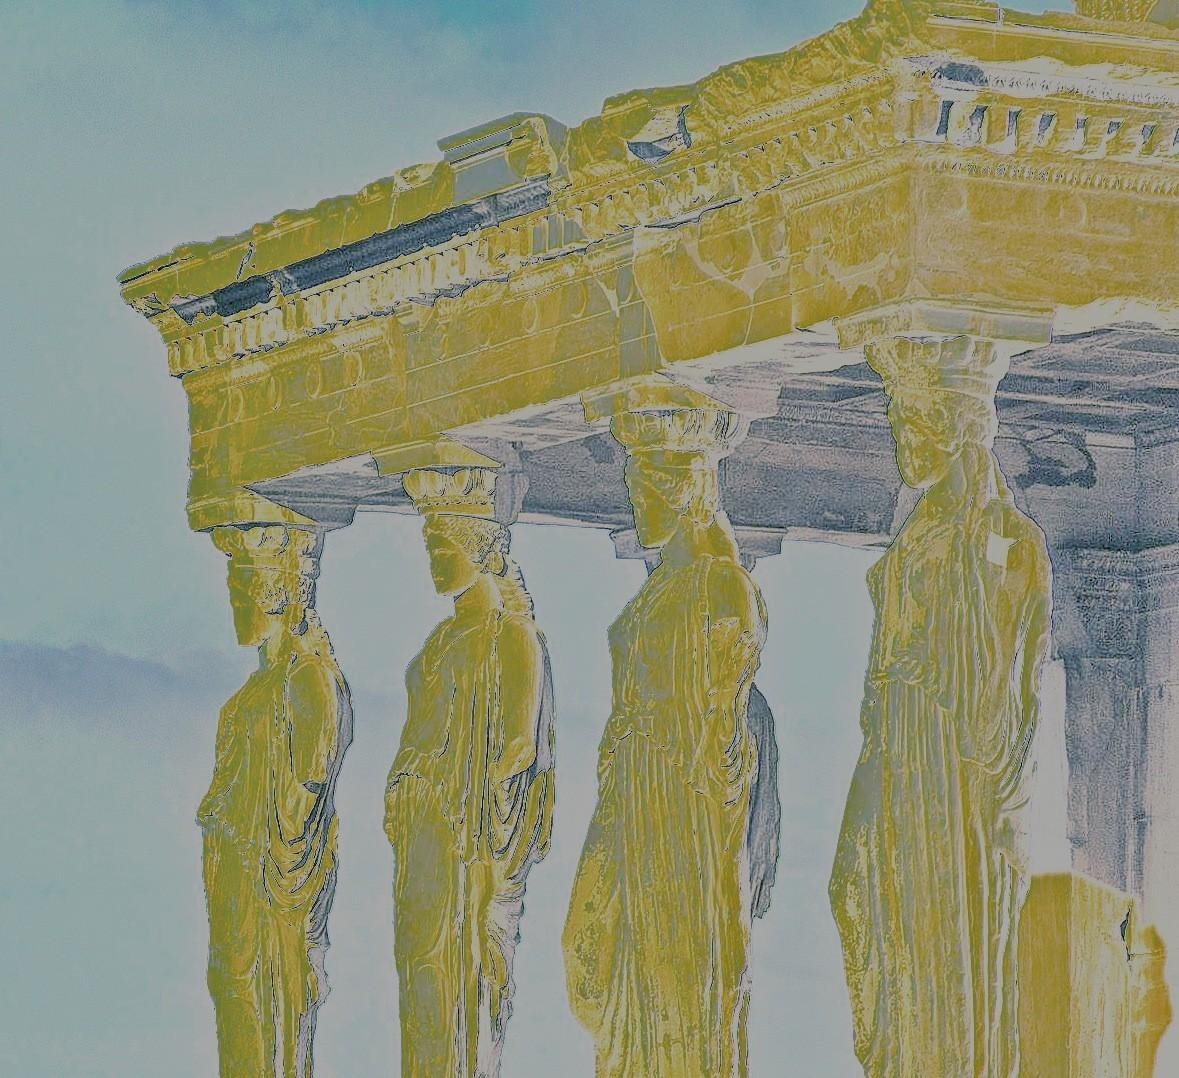 2013 09 Acropolis5 2 - Martin Müller - painting on digital print